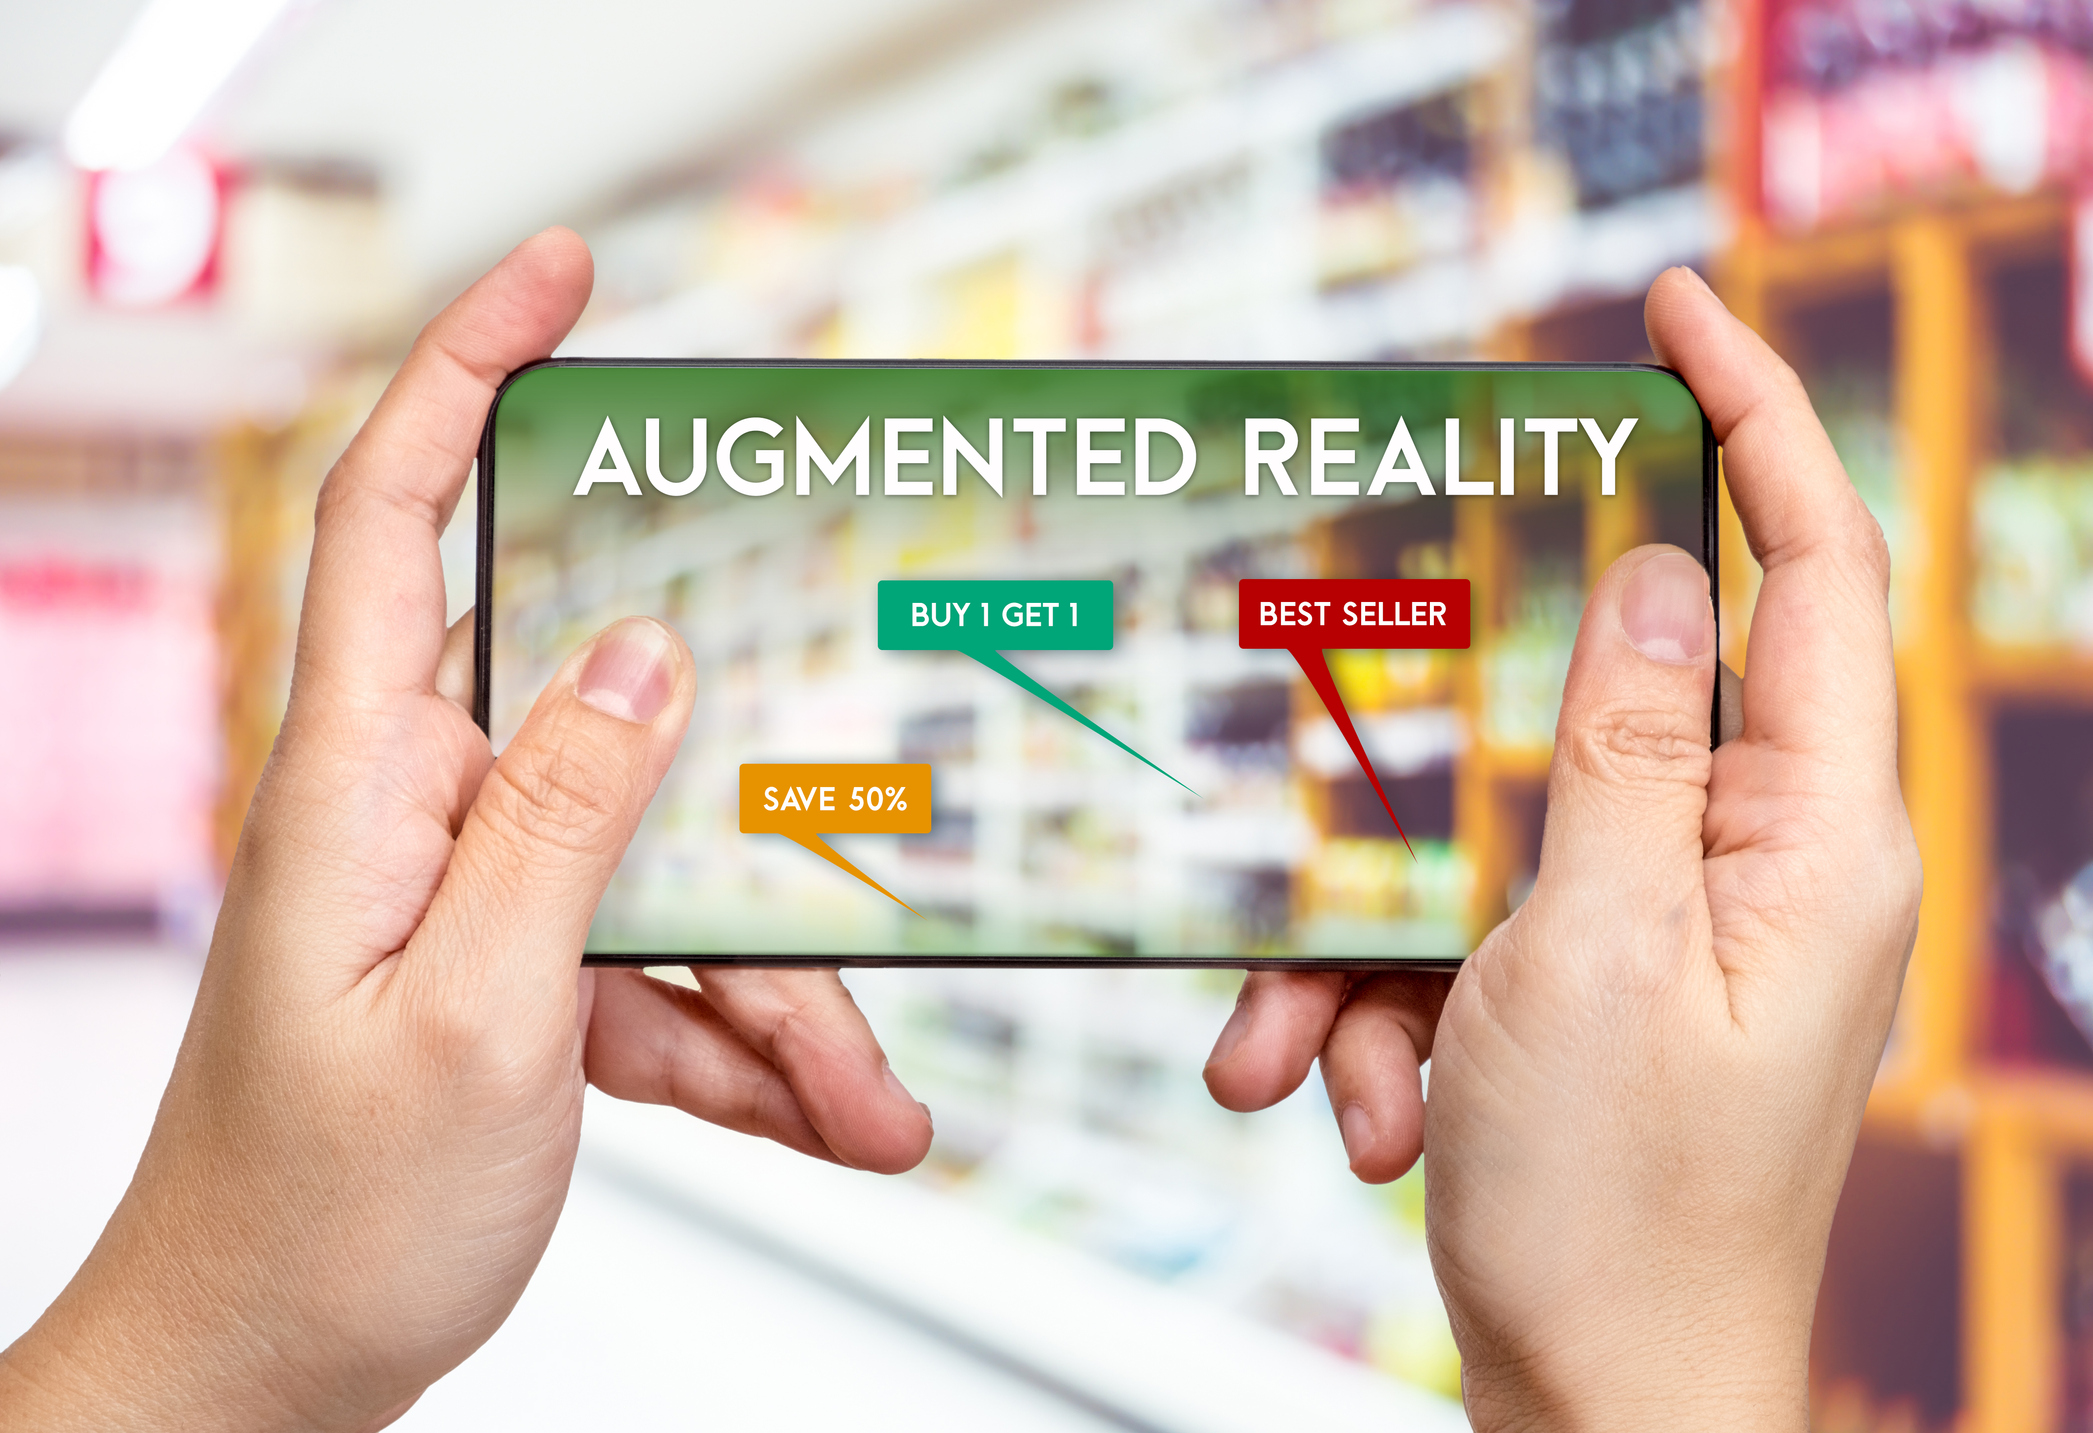 5 Brands Leveraging AR to Tell Their Story